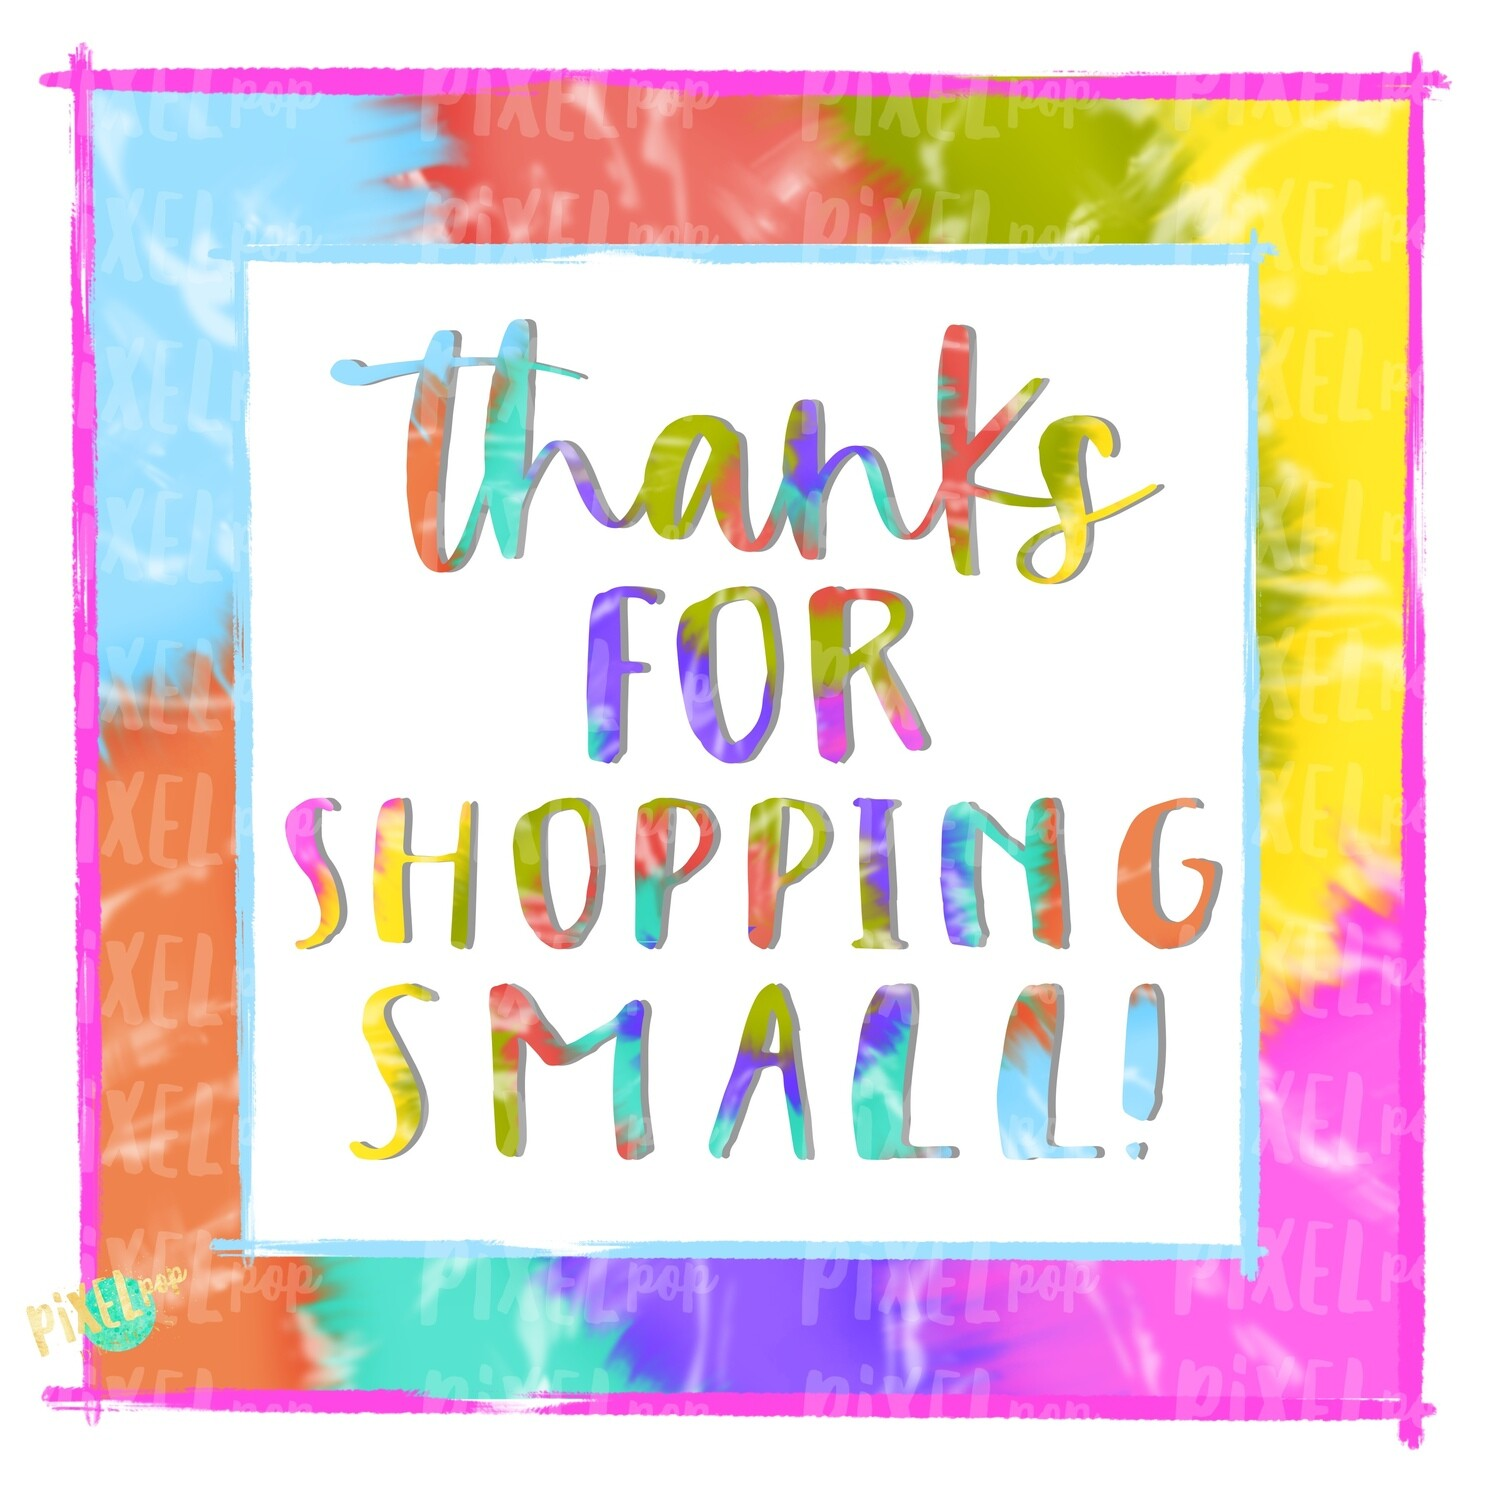 Thank You for Shopping Small Square Tie Dye PNG | Business Clip | Small Business Marketing Image | Small Business Sticker Art | Business Art